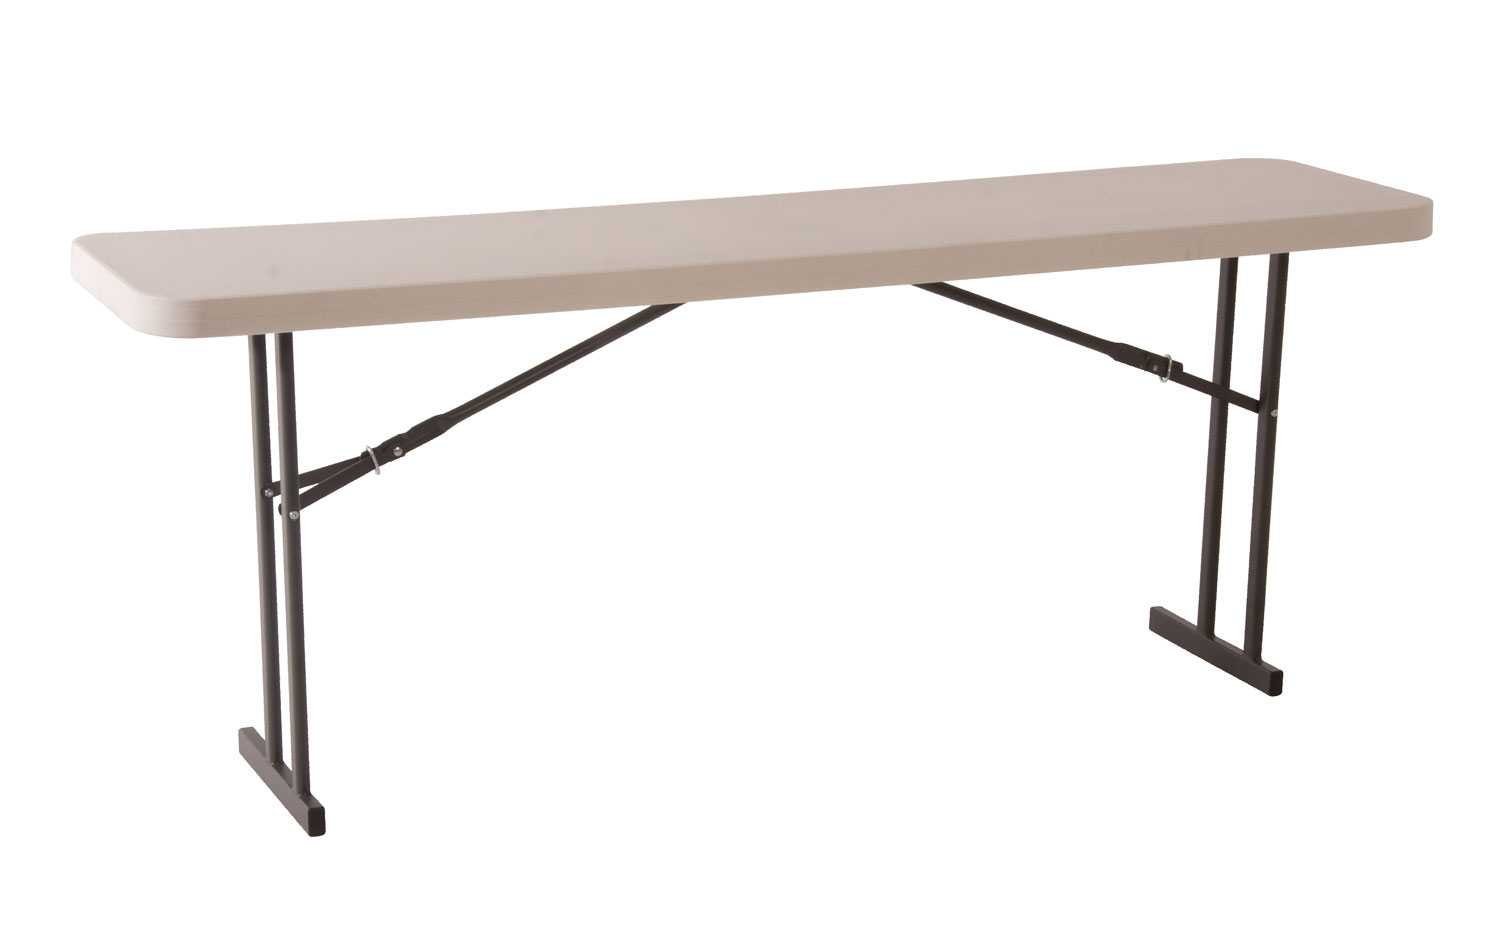 Lifetime 80177 Folding Conference Table, 8 Feet, White Granite